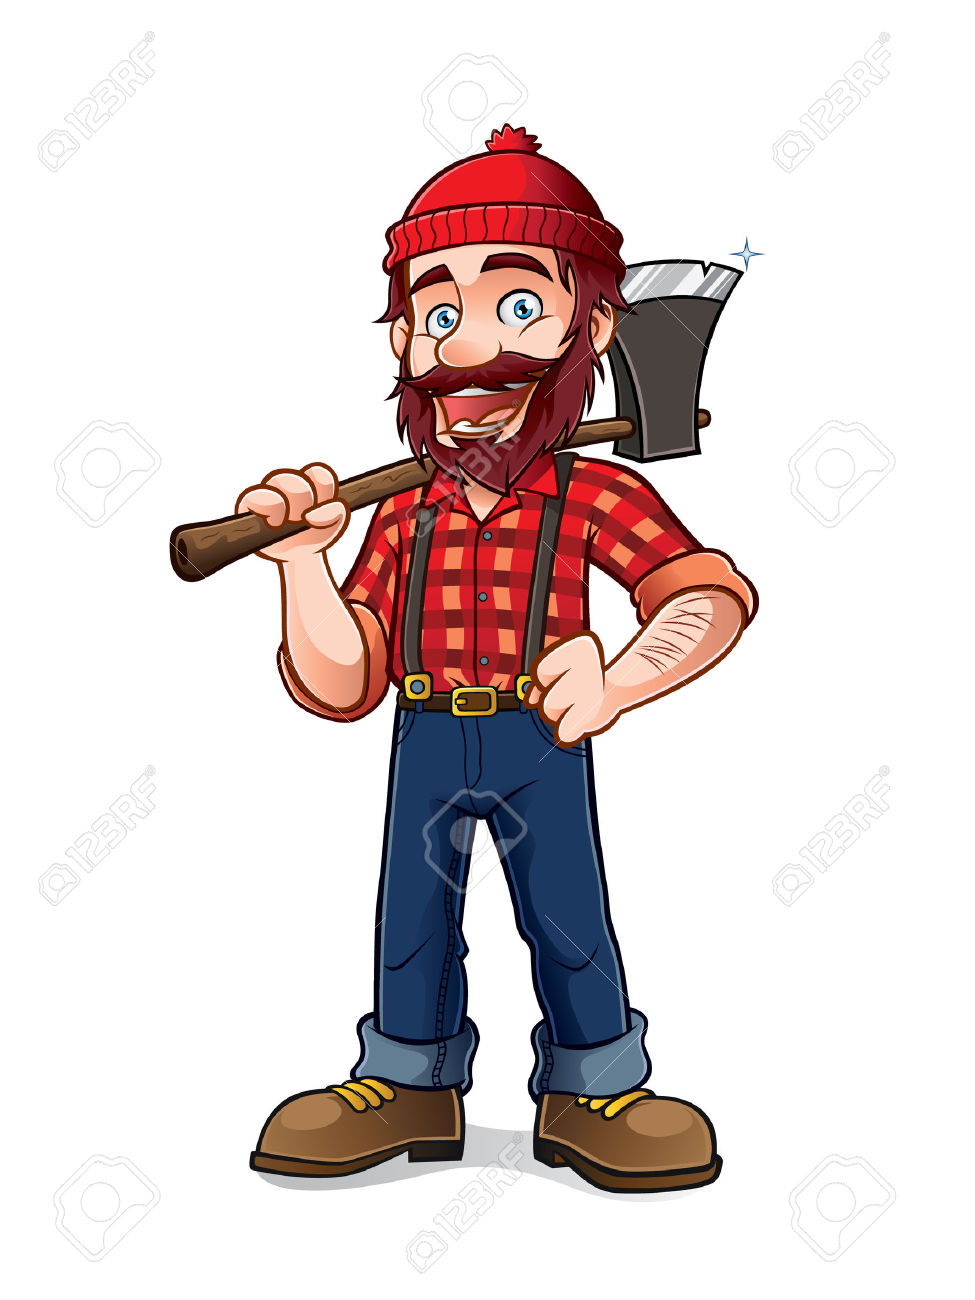 5,892 Lumberjack Stock Vector Illustration And Royalty Free.